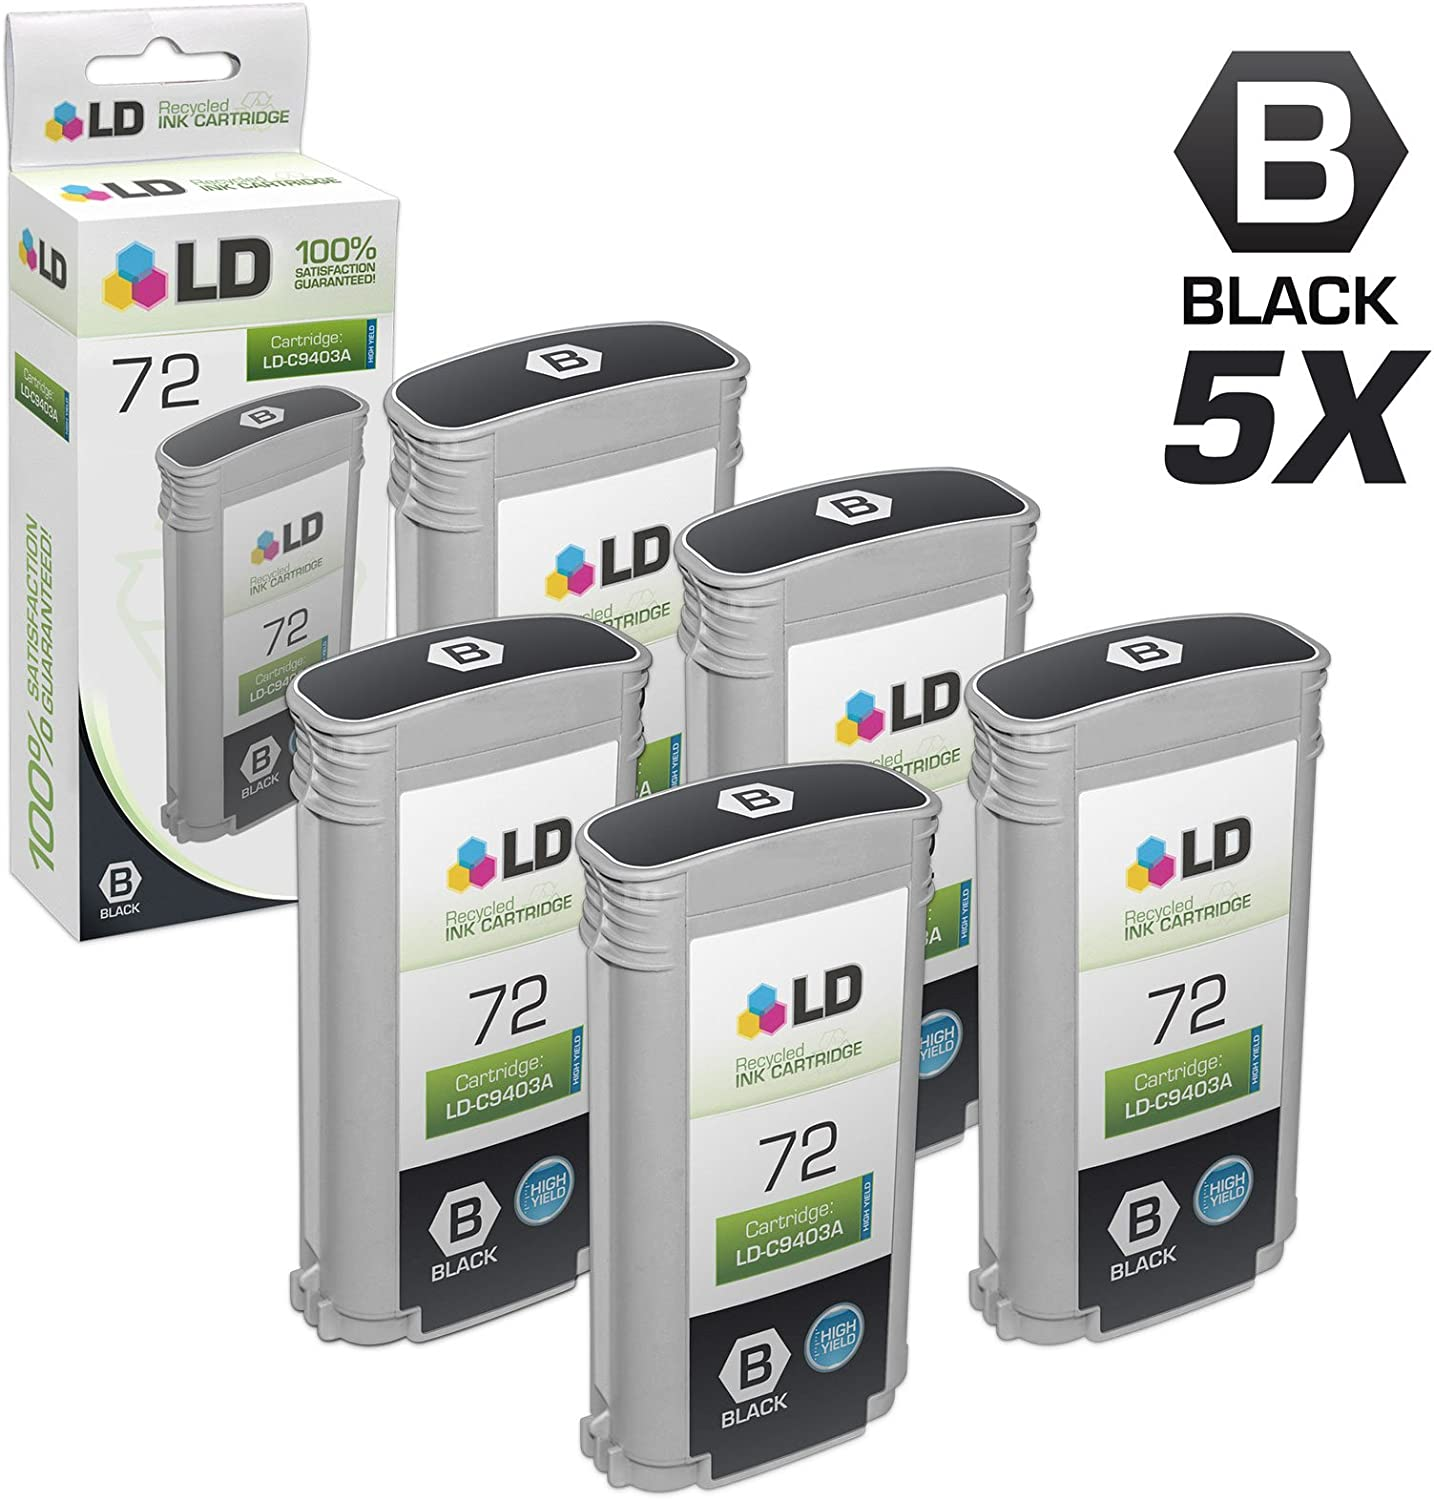 LD Remanufactured Ink Cartridge Replacement for HP 72 C9403A High Yield (Matte Black, 5-Pack)